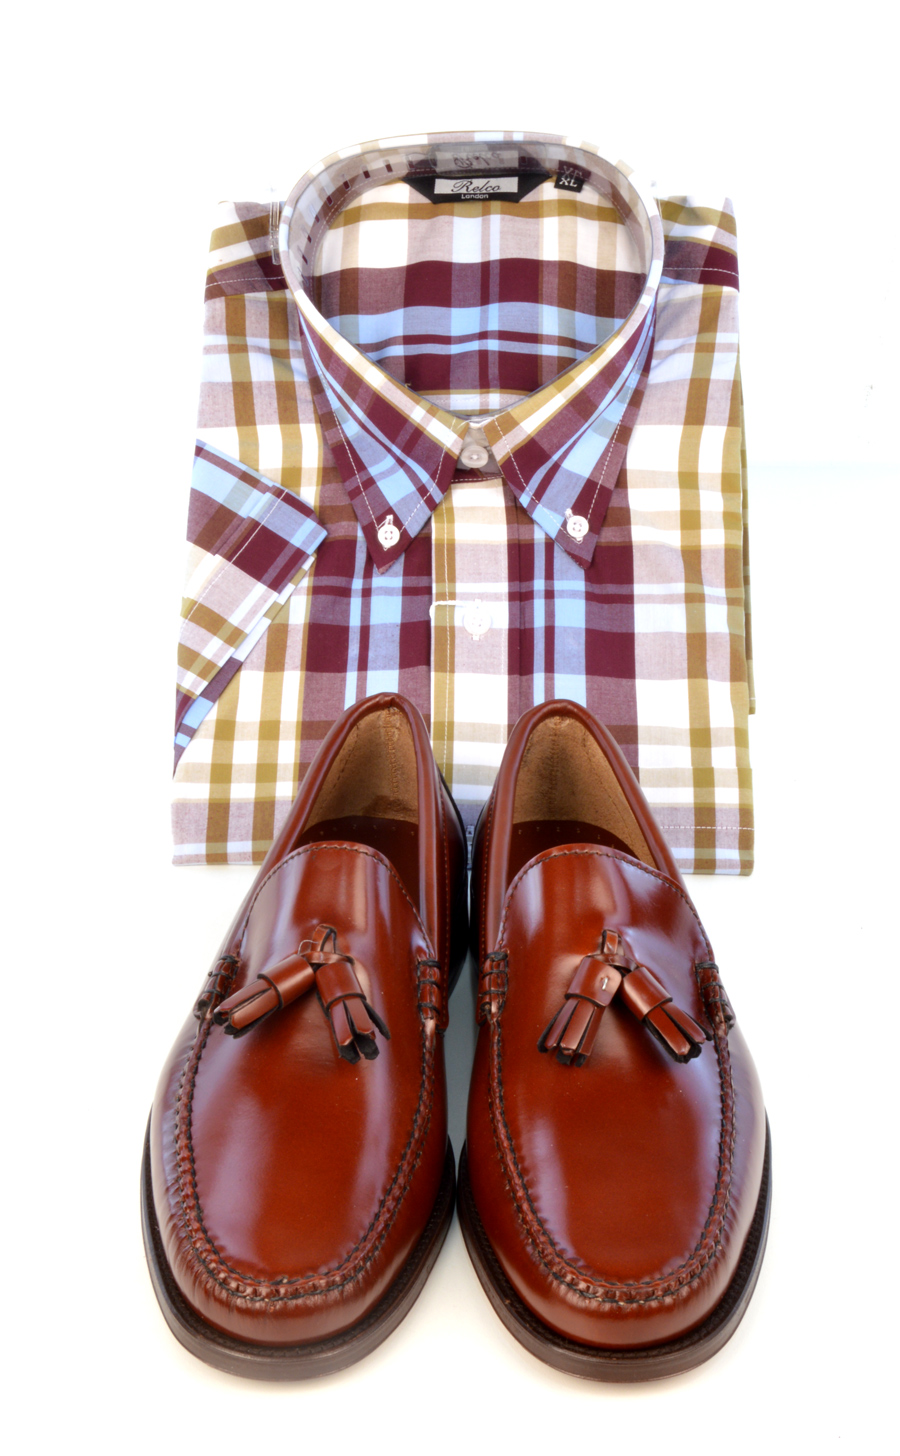 modshoes-chestnut-tassel-loafers-with-check-shirt